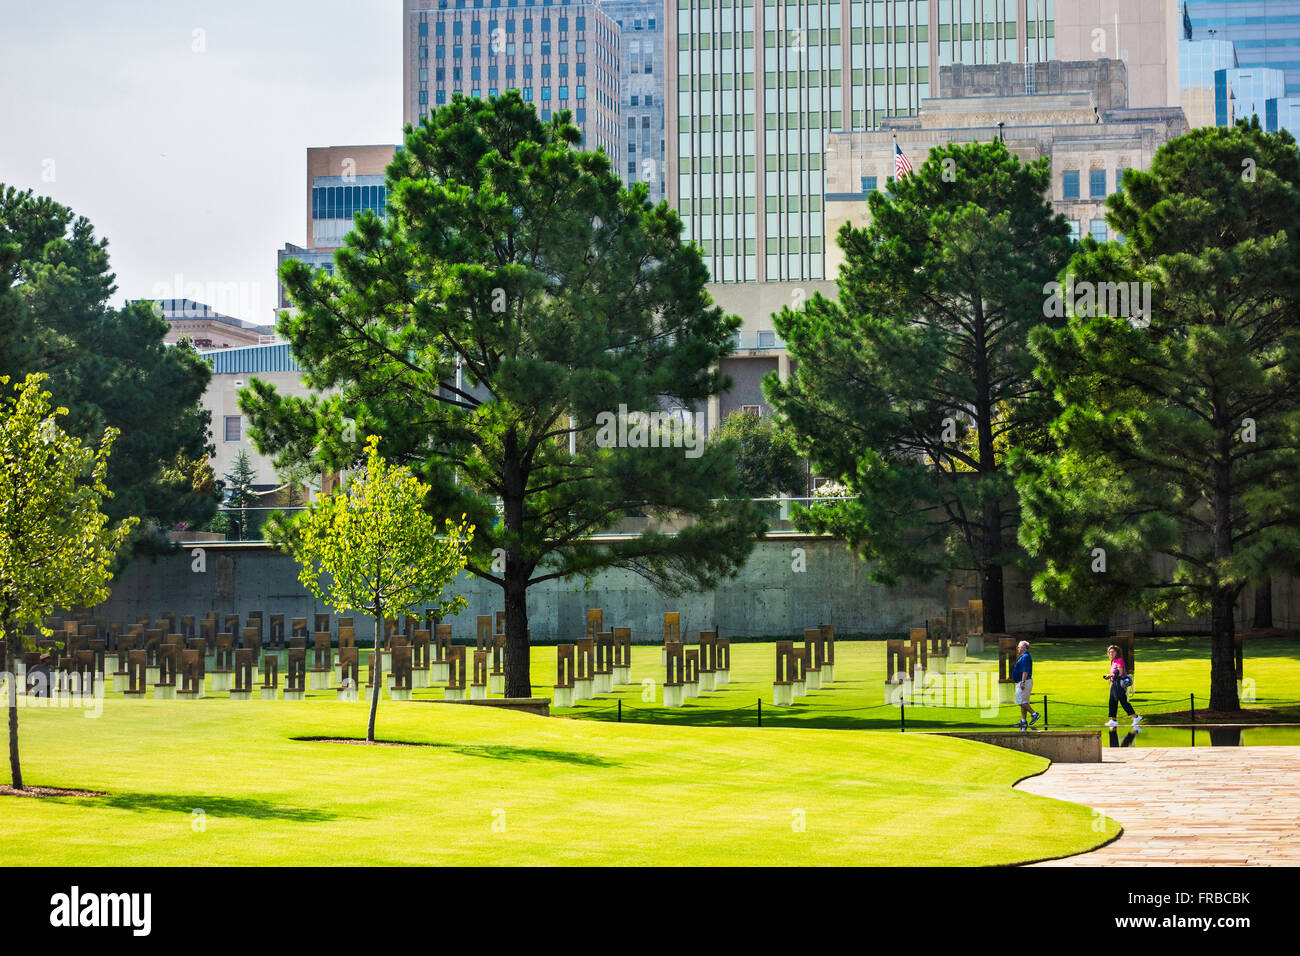 The grounds of the Oklahoma City bombing memorial, showing the Field of Chairs and city buildings. Oklahoma, USA. Stock Photo